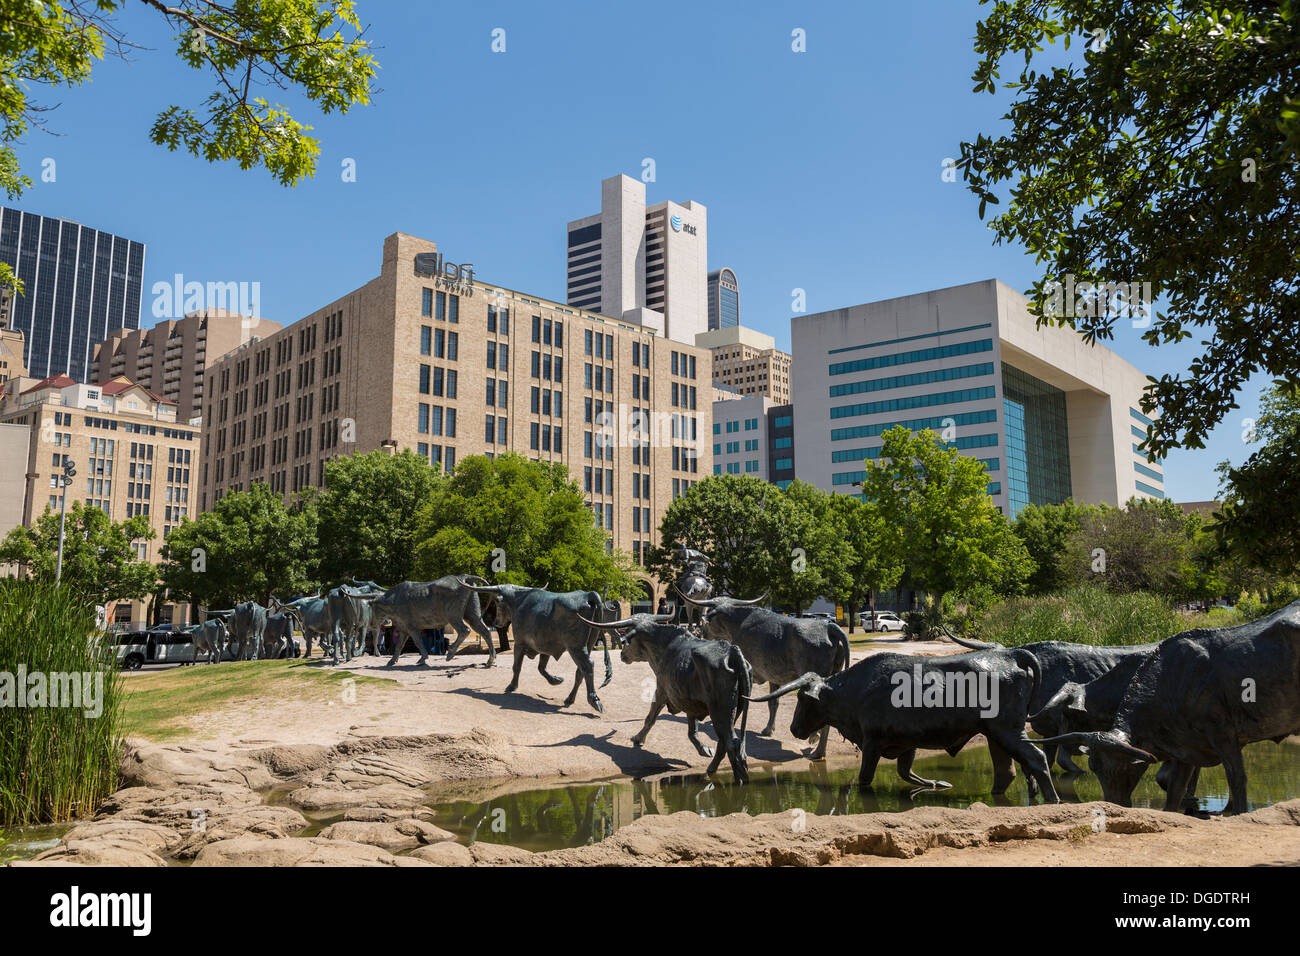 Bronze sculptures Cattle Drive Pioneer Plaza Dallas Texas USA - Stock Image